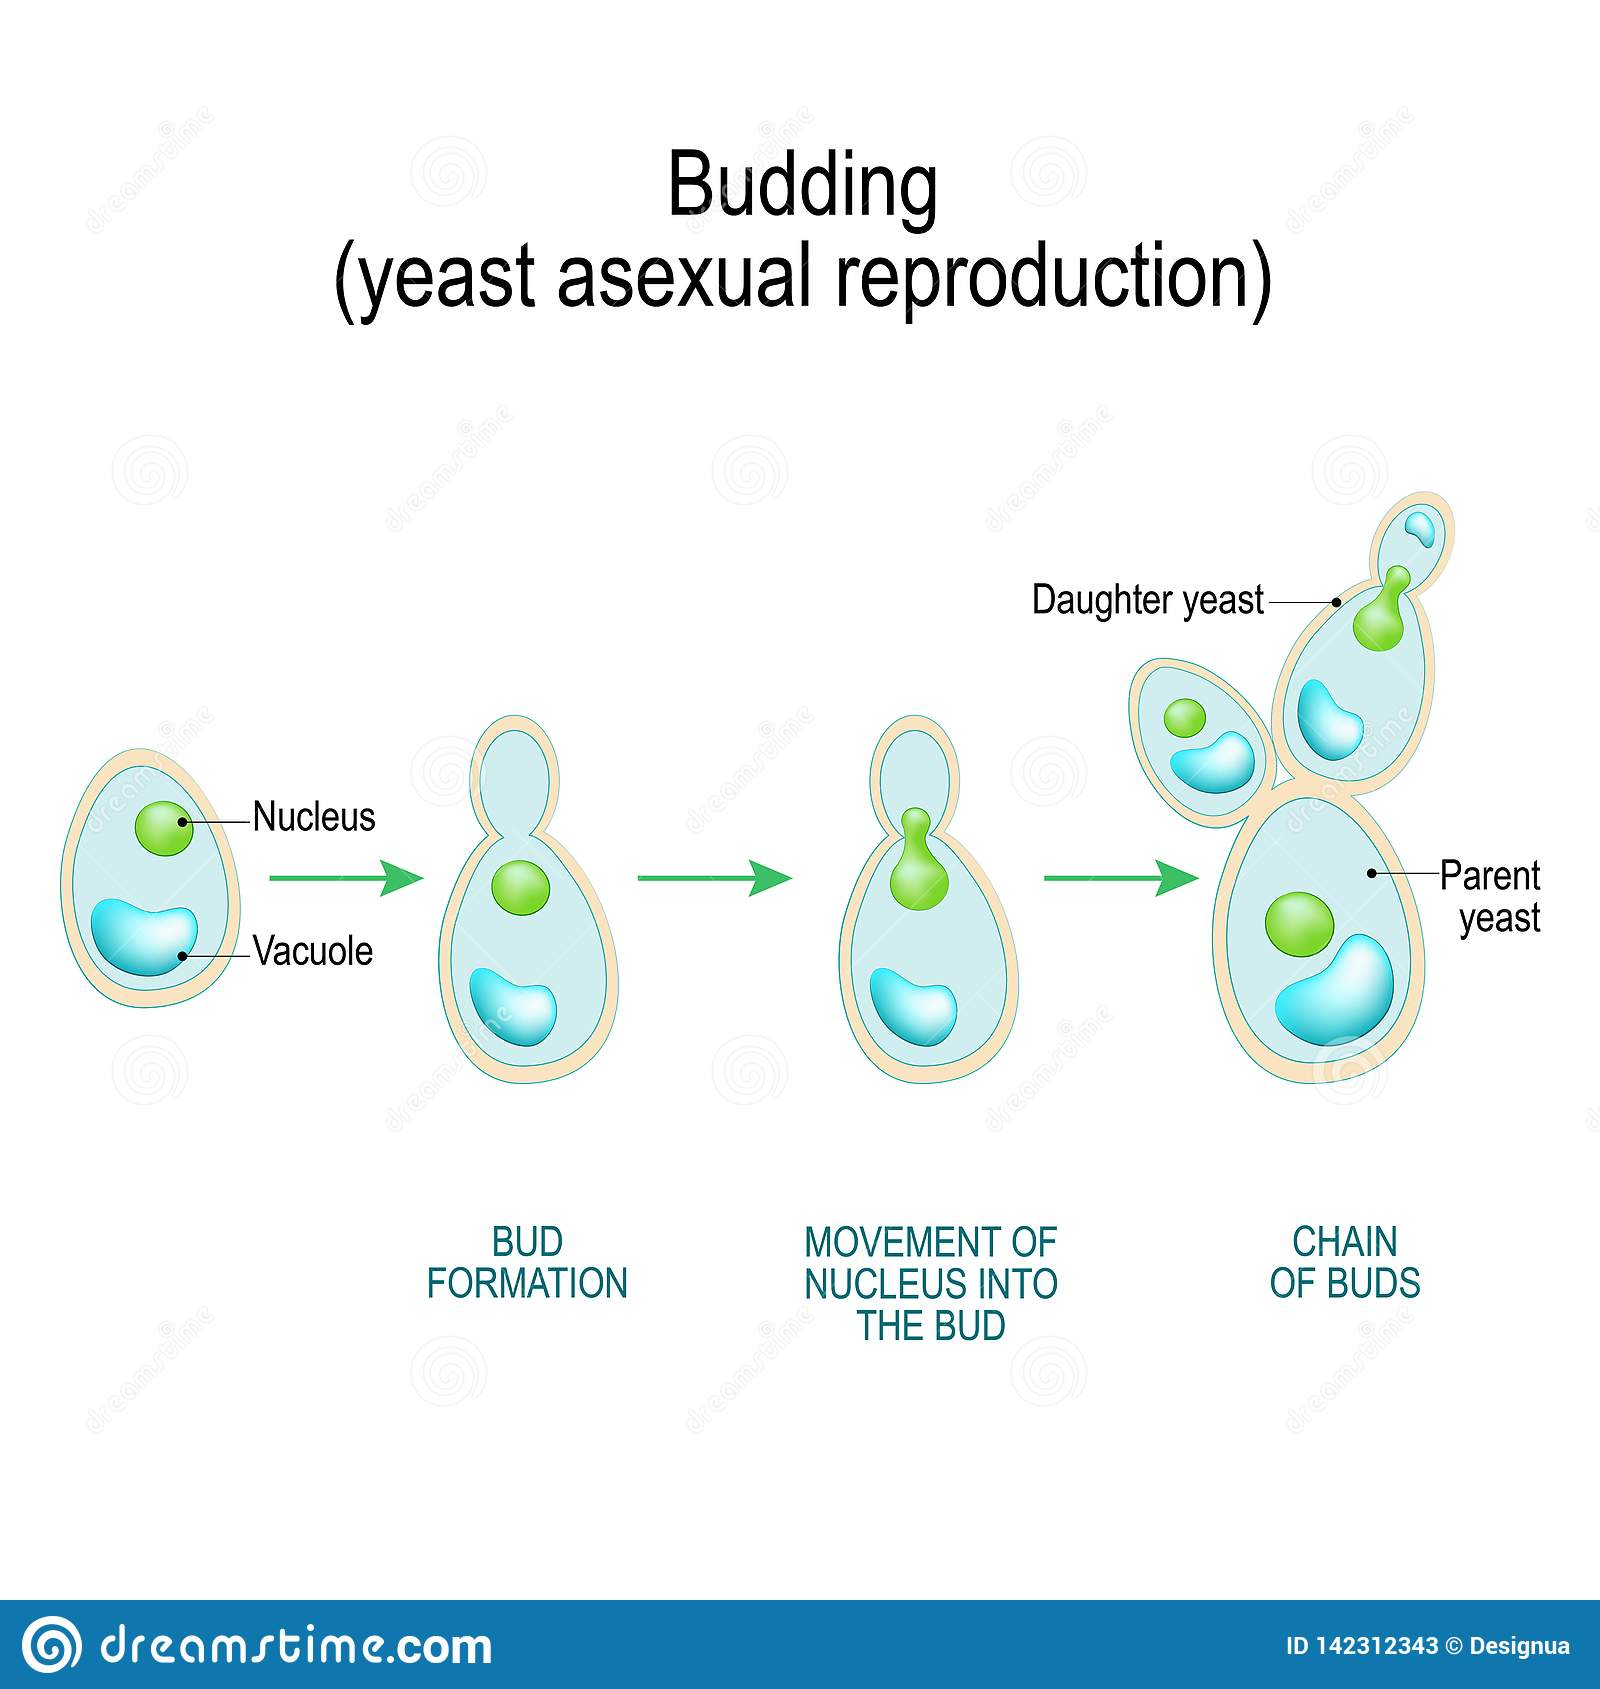 Distinguish between relative and absolute hookup techniques